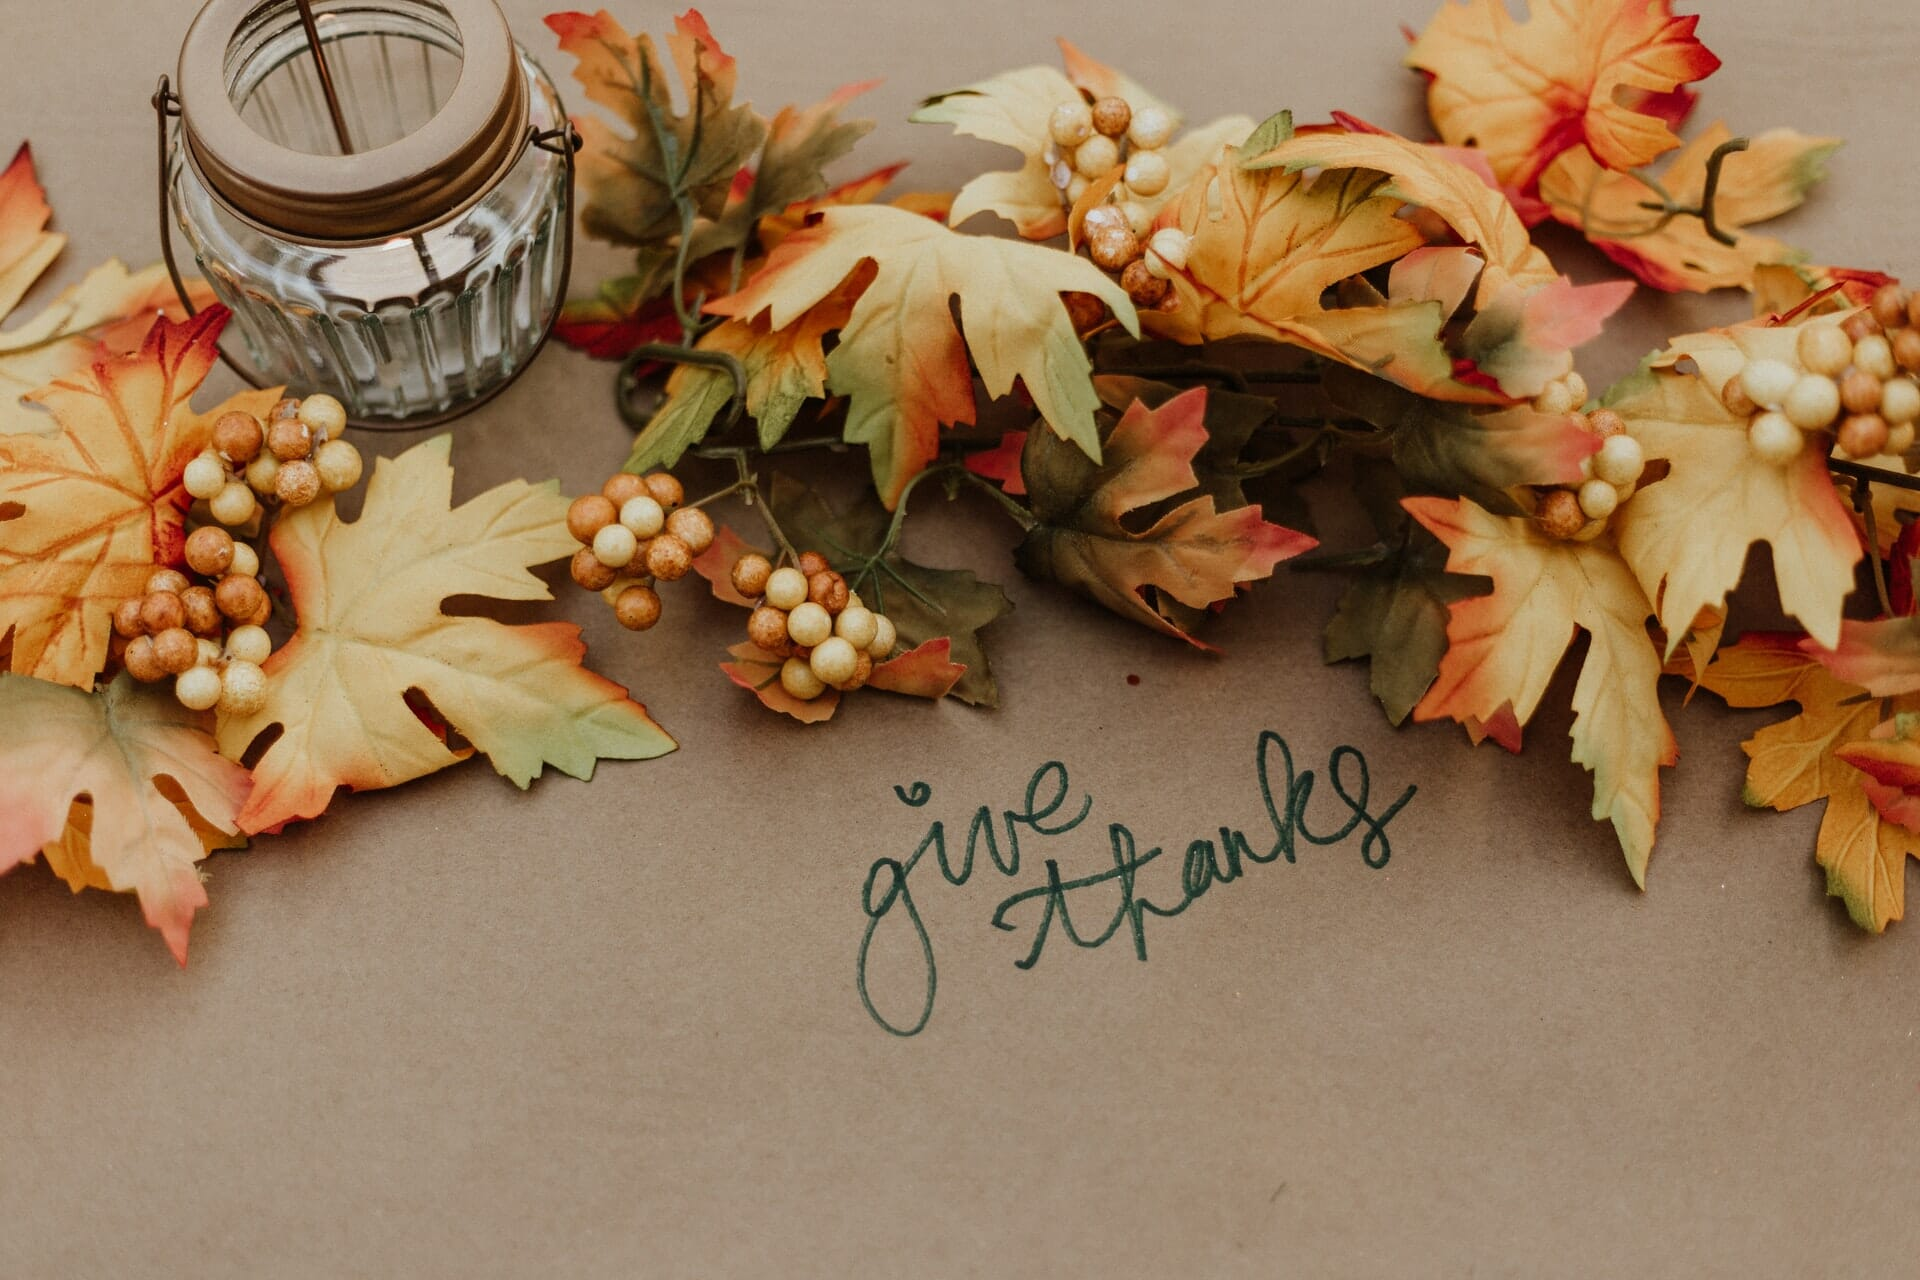 Fall leaves and candle holder on brown paper that says give thanks.